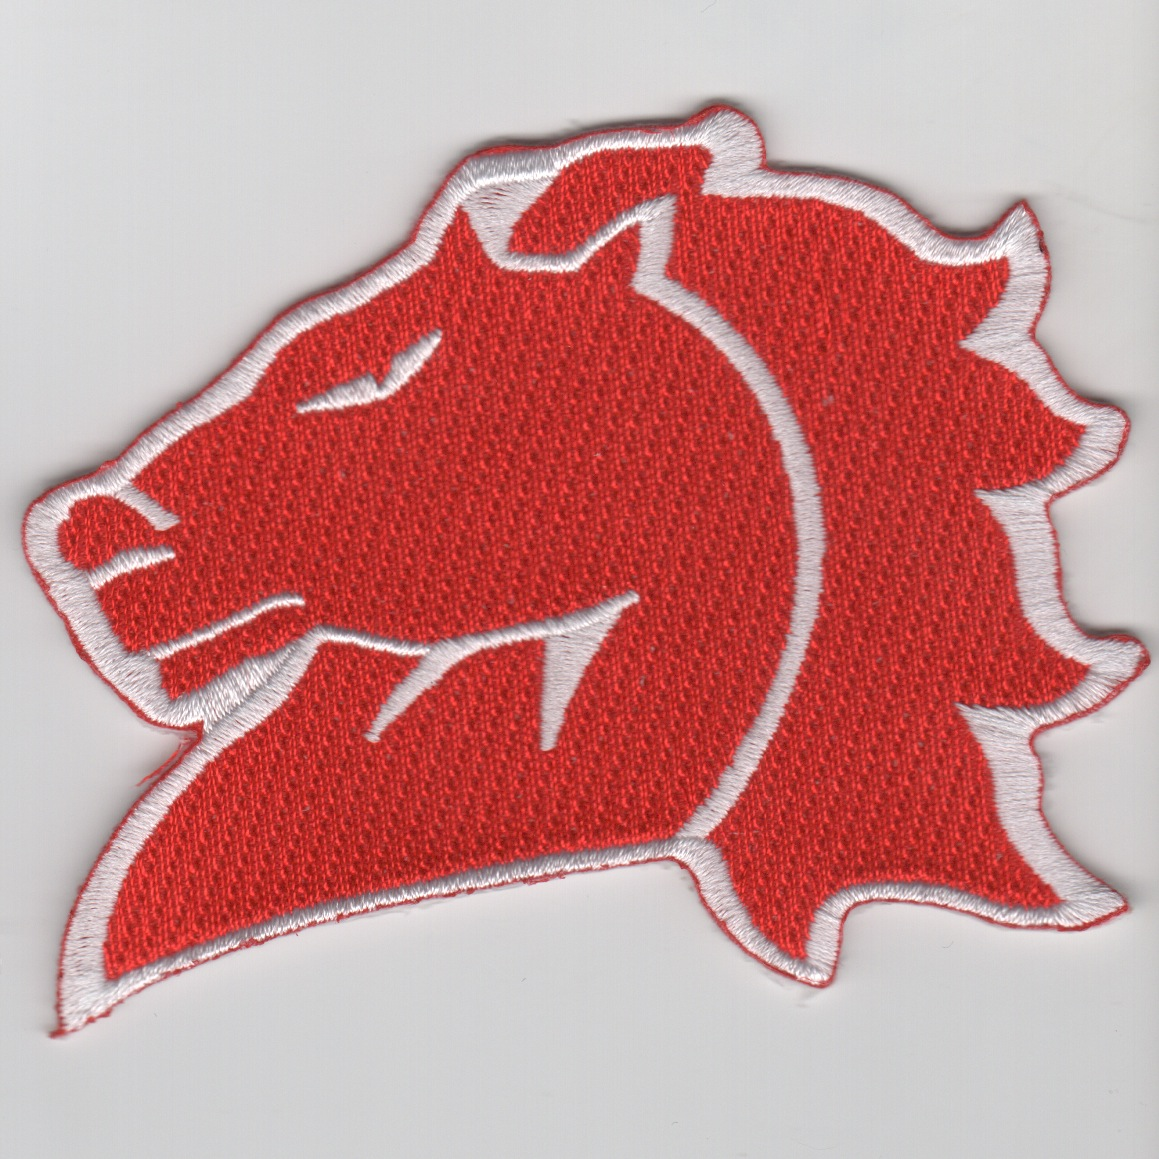 HM-14 Horsehead Patch (Red)